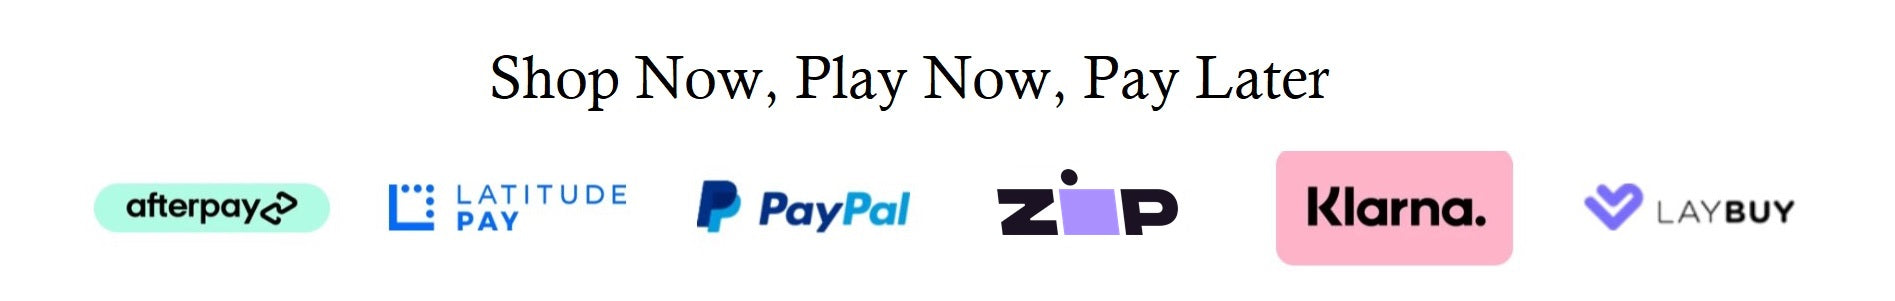 Shop Now, Play Now, Pay Later